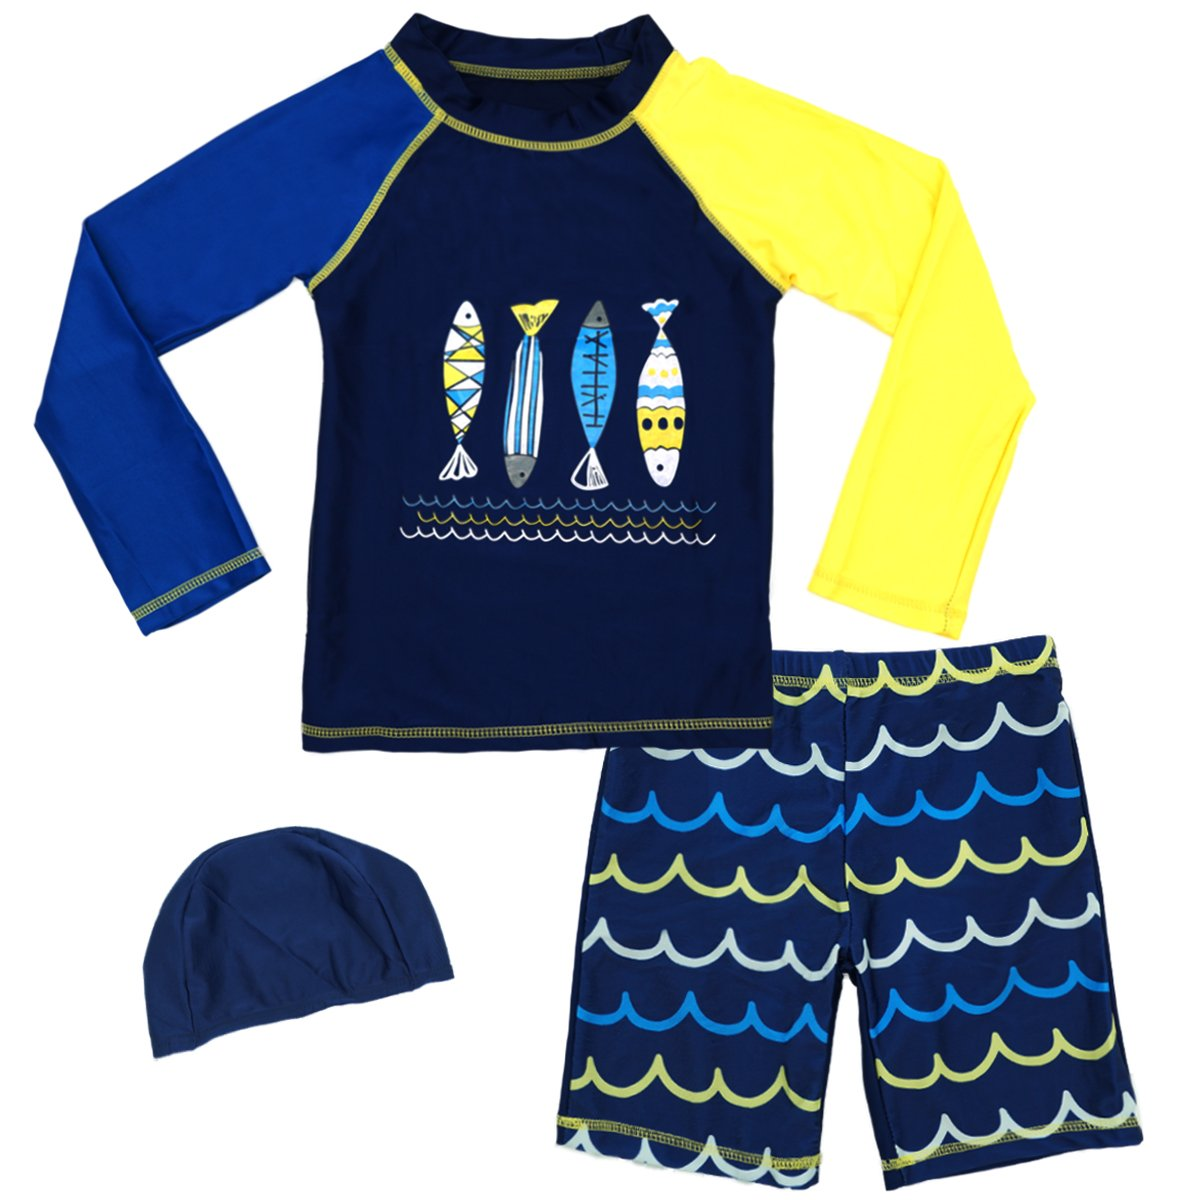 a80f739f09 SINOLY Rash Guard Swimsuits Kids Long Sleeve Swimwear Sets UV Sun  Protective Surfing Suit UPF 50+ Long sleeve design,can best to pretect your  children\'s ...